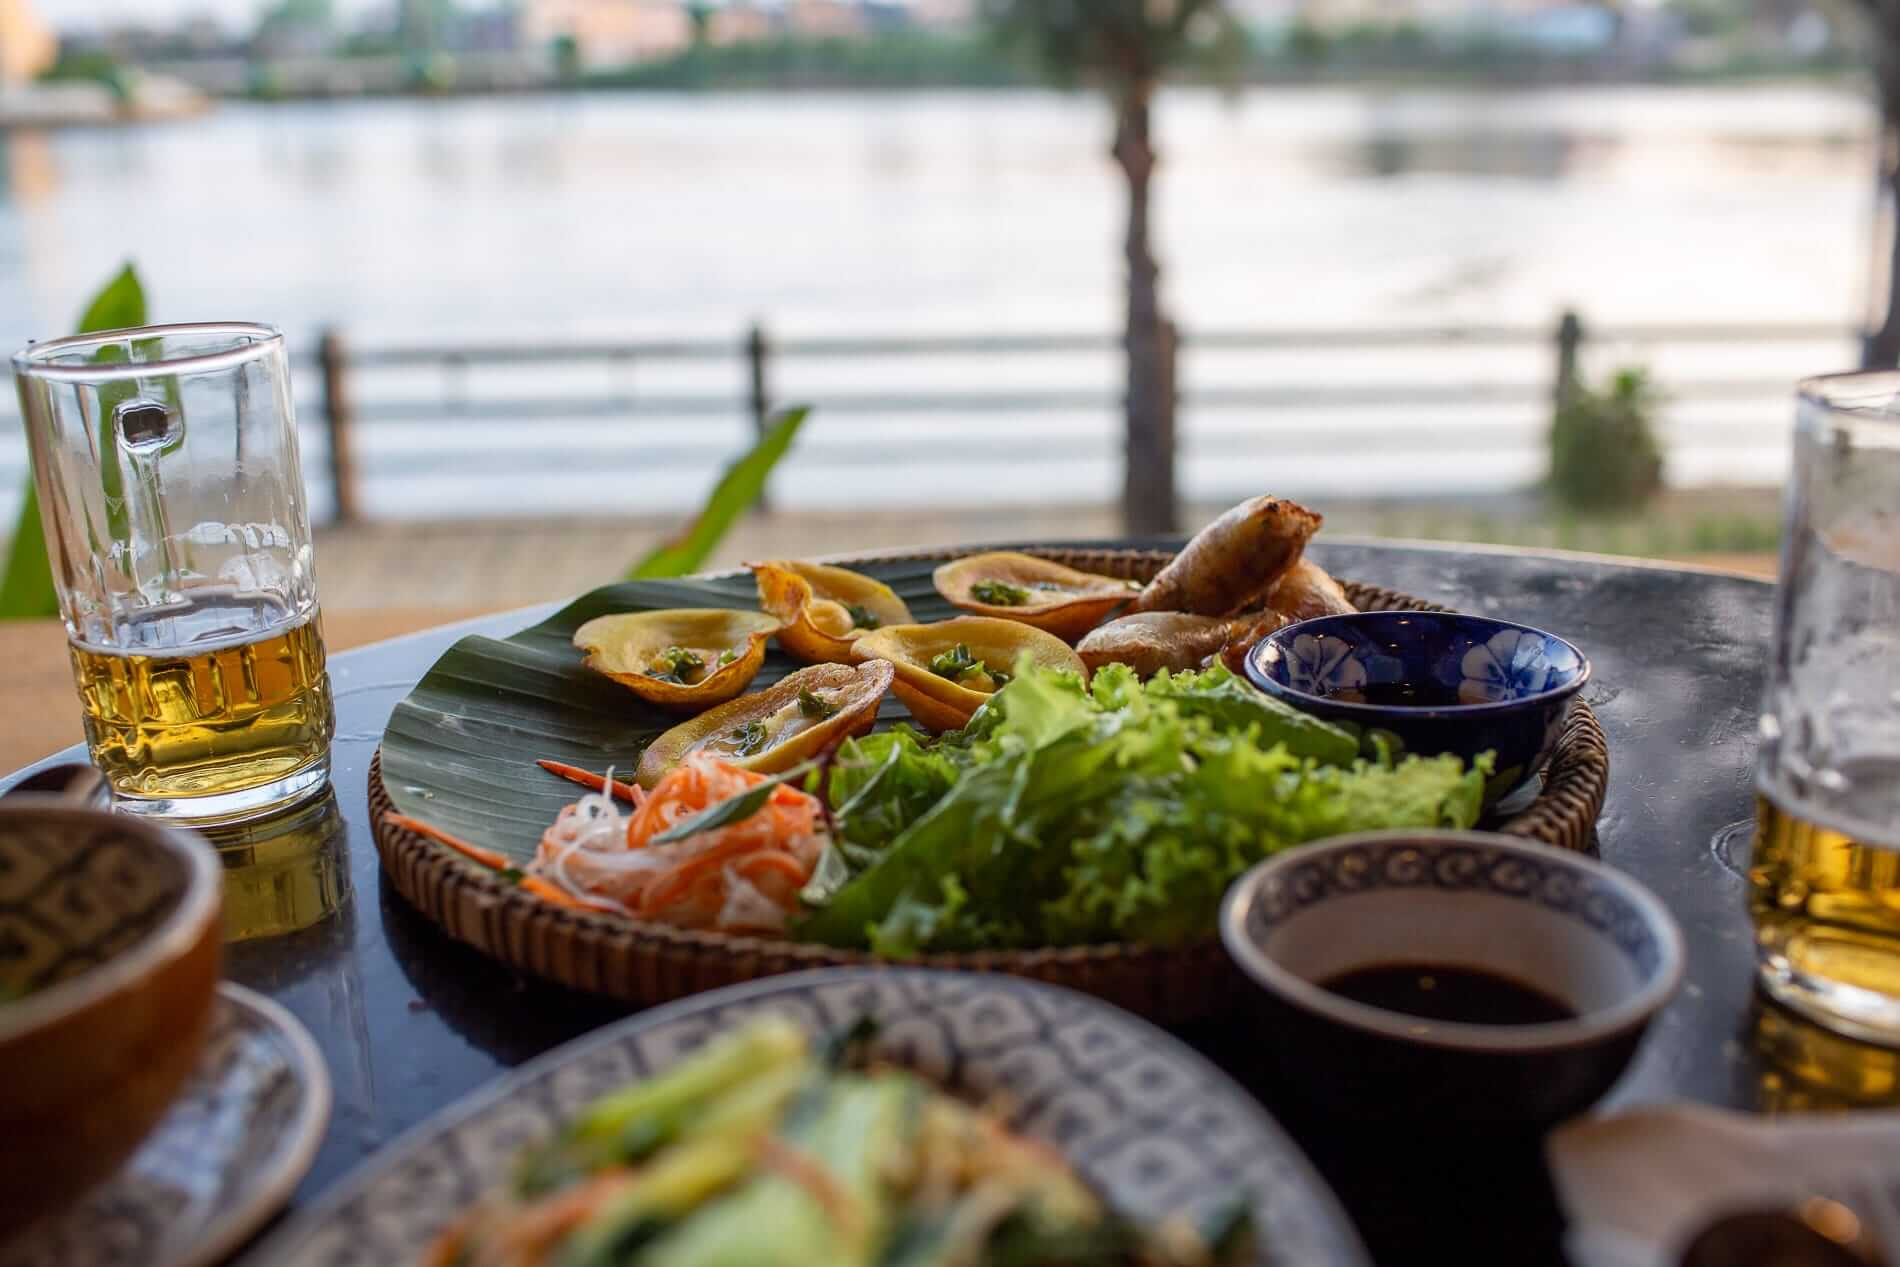 Authentic Vietnamese dishes at Hoa Hien Restaurant's riverside